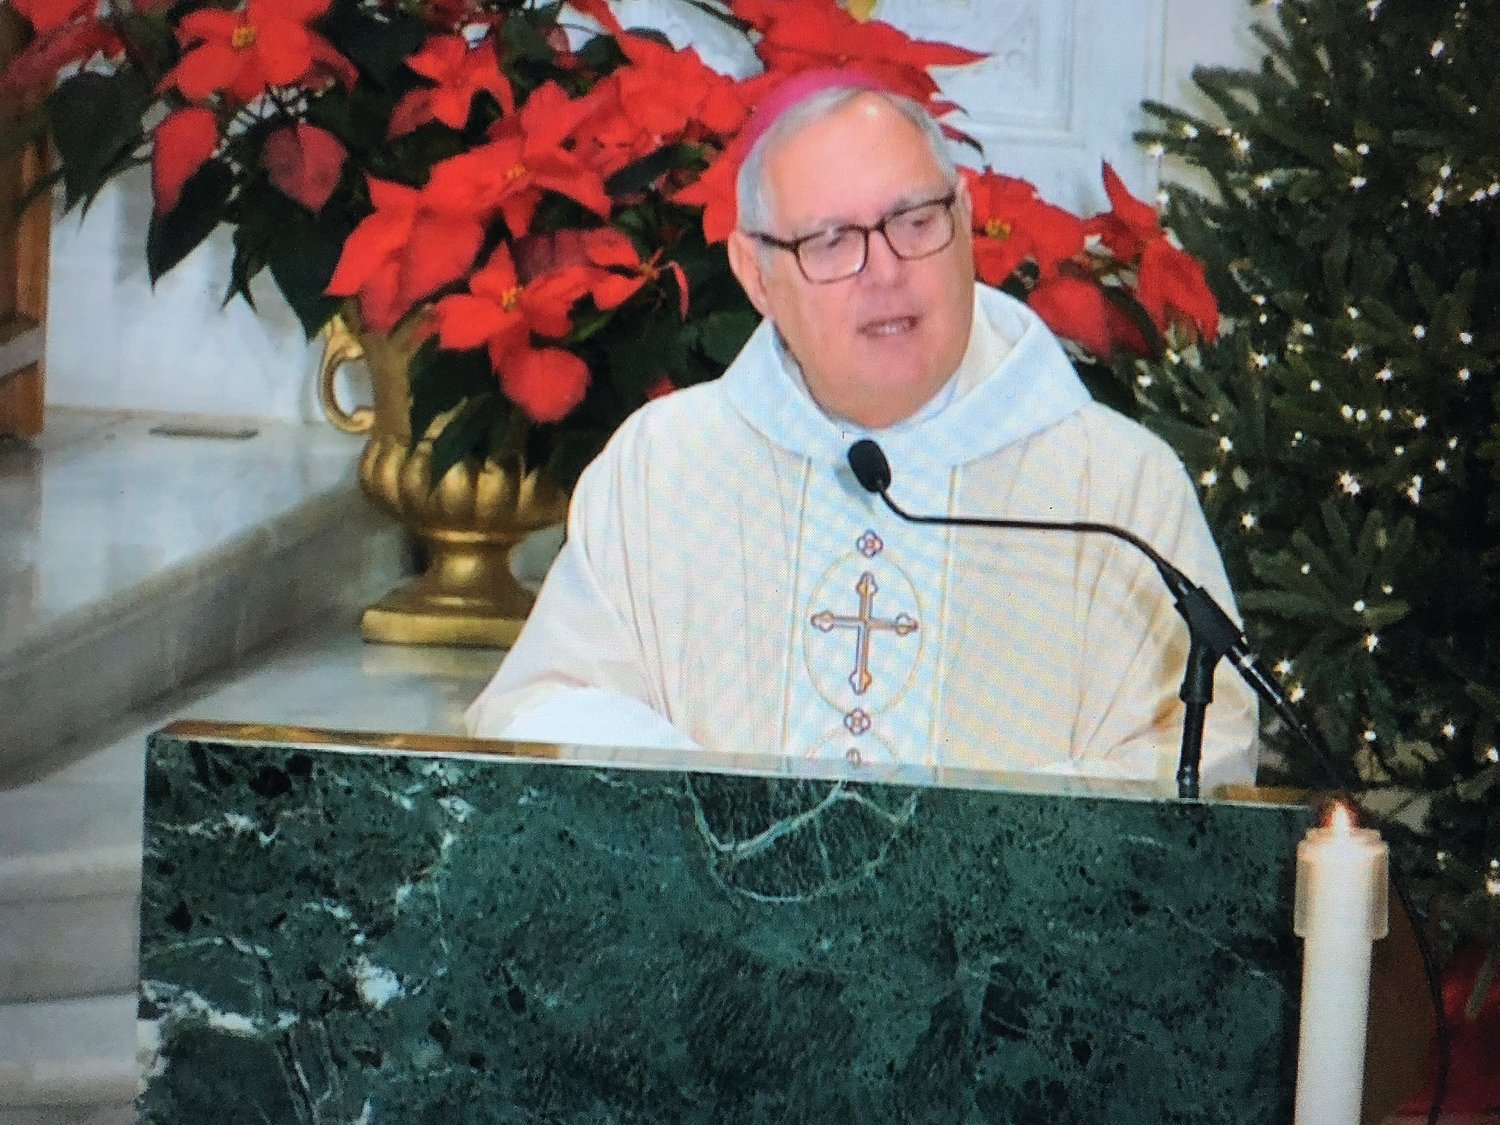 Bishop Thomas J. Tobin offers the faithful a message of renewed hope in his homily at the 10 a.m. Mass on Christmas morning at the Cathedral of SS. Peter and Paul.